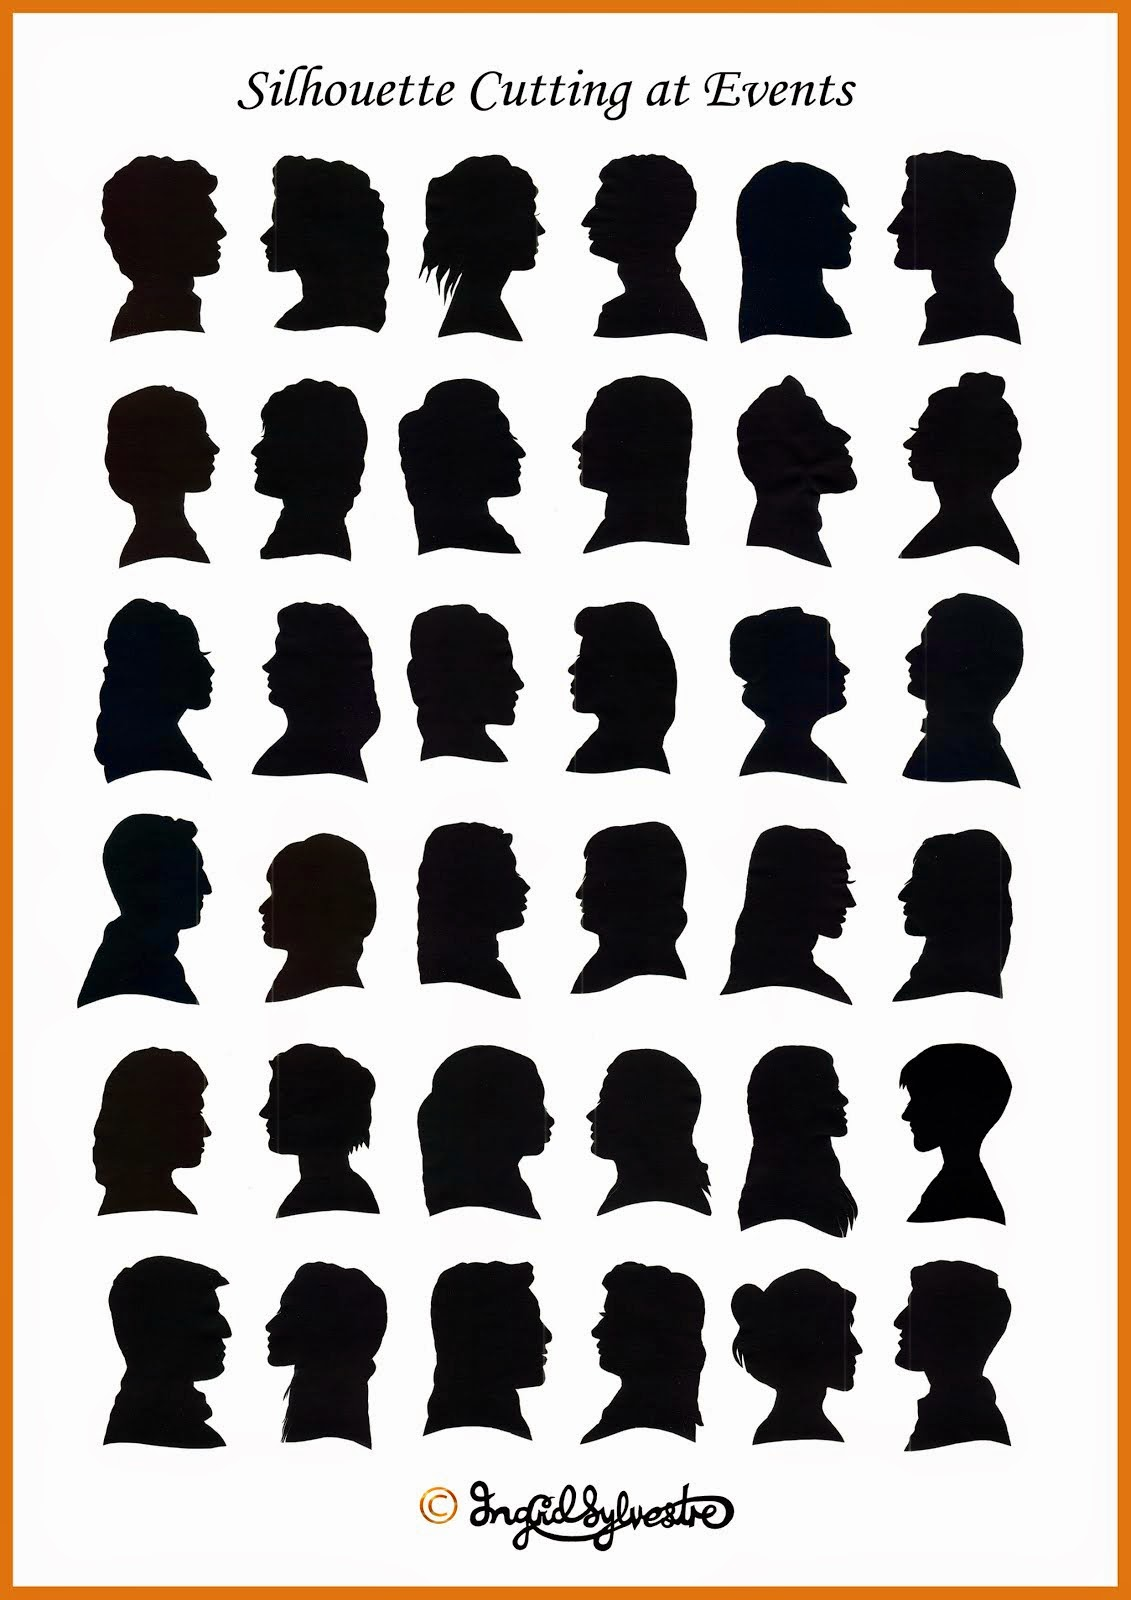 Silhouettes cut by Ingrid Sylvestre, at weddings, parties, proms & corporate events